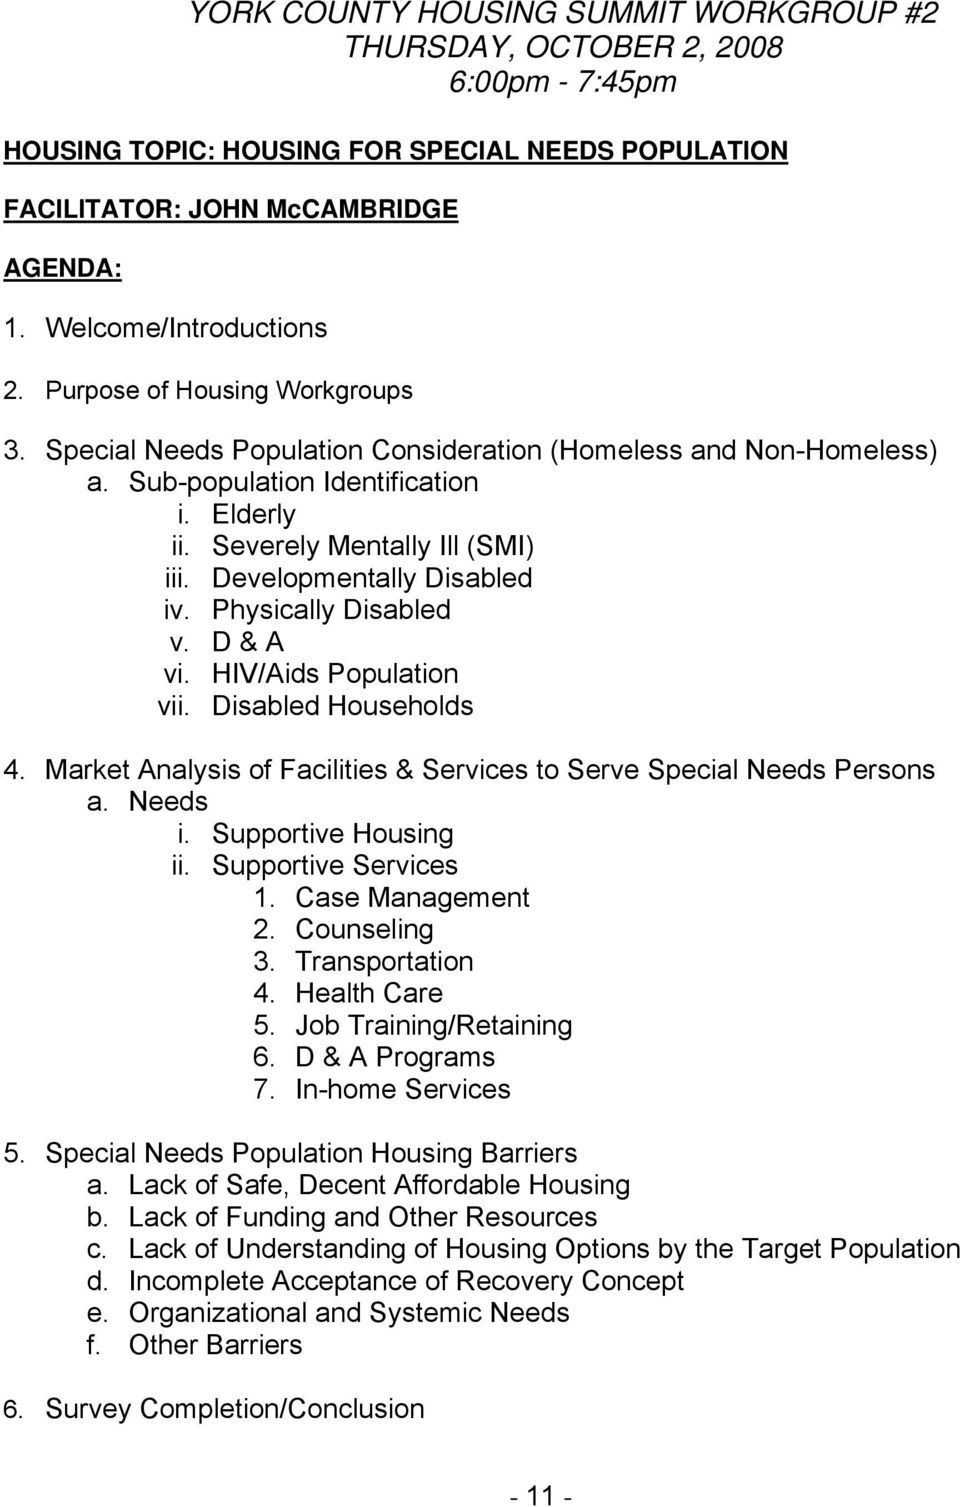 Developmentally Disabled iv. Physically Disabled v. D & A vi. HIV/Aids Population vii. Disabled Households 4. Market Analysis of Facilities & Services to Serve Special Needs Persons a. Needs i.